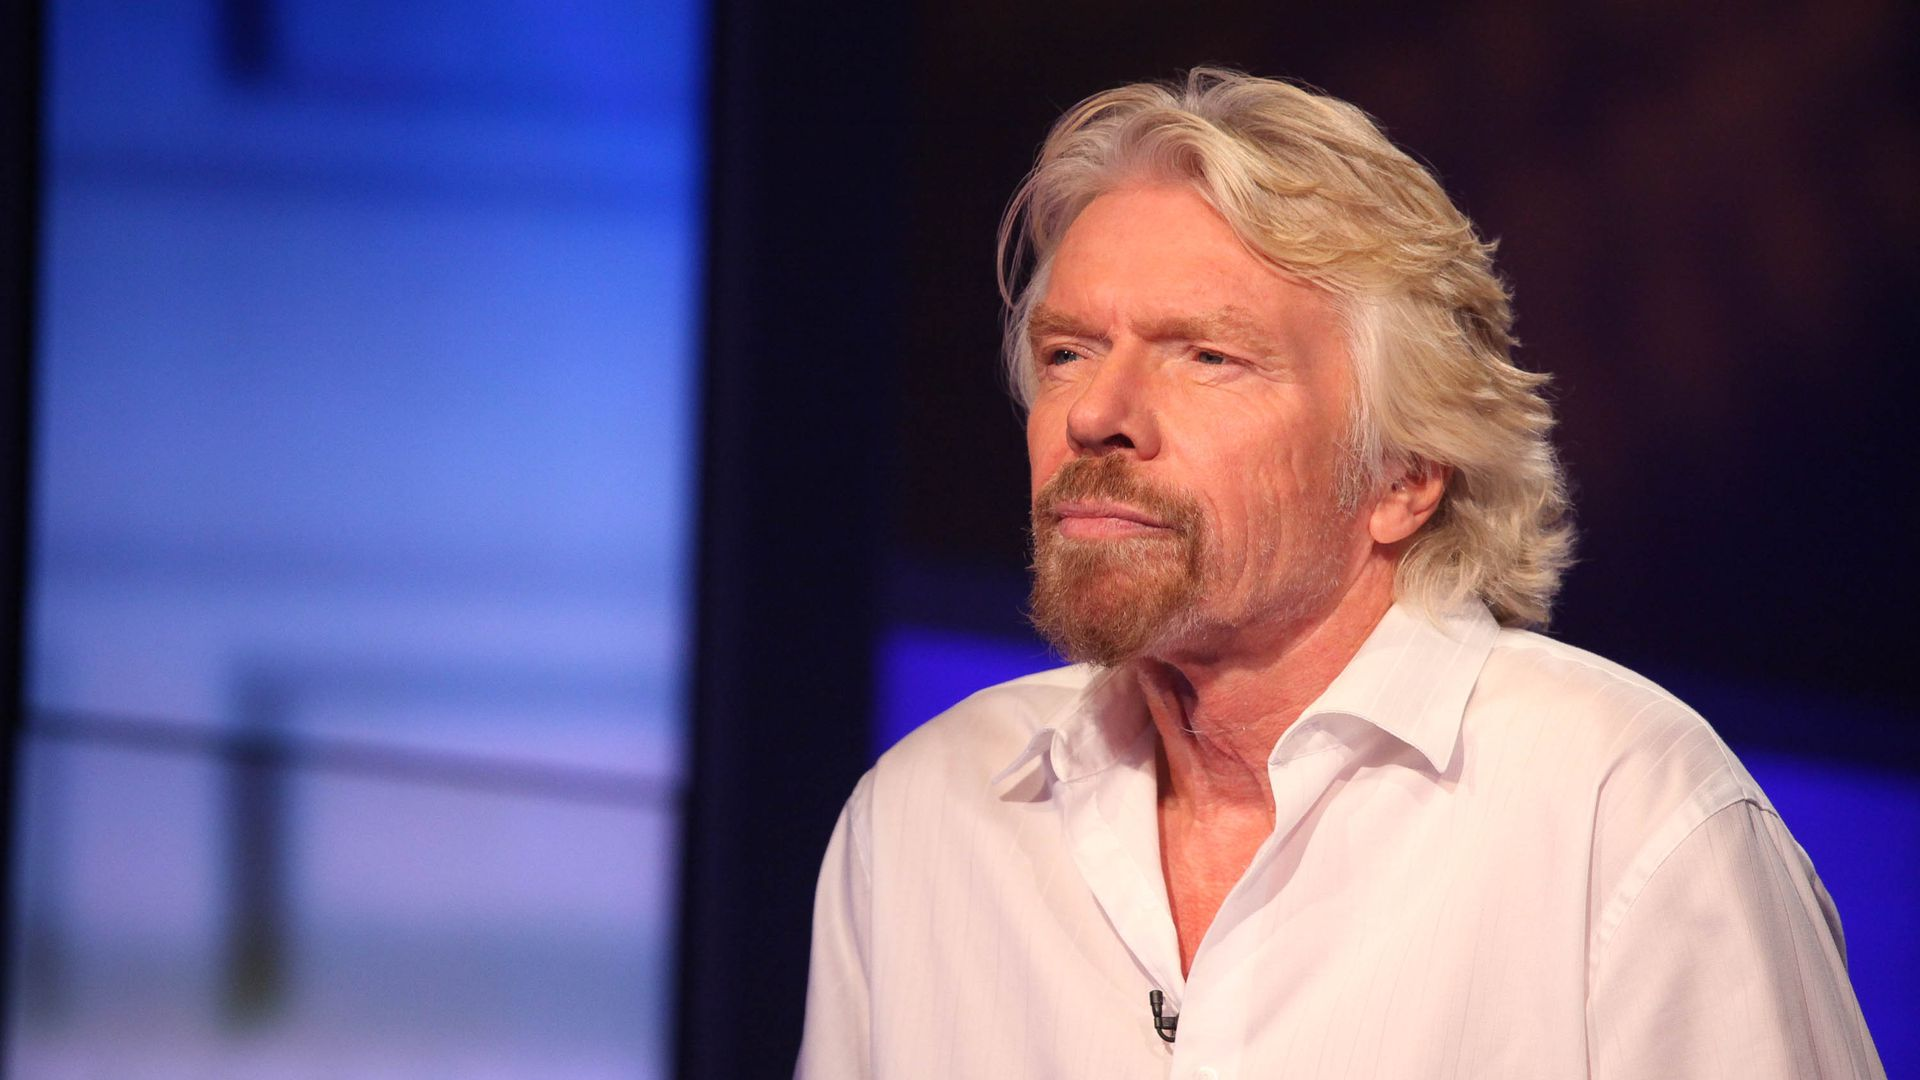 Virgin Atlantic founder Richard Branson